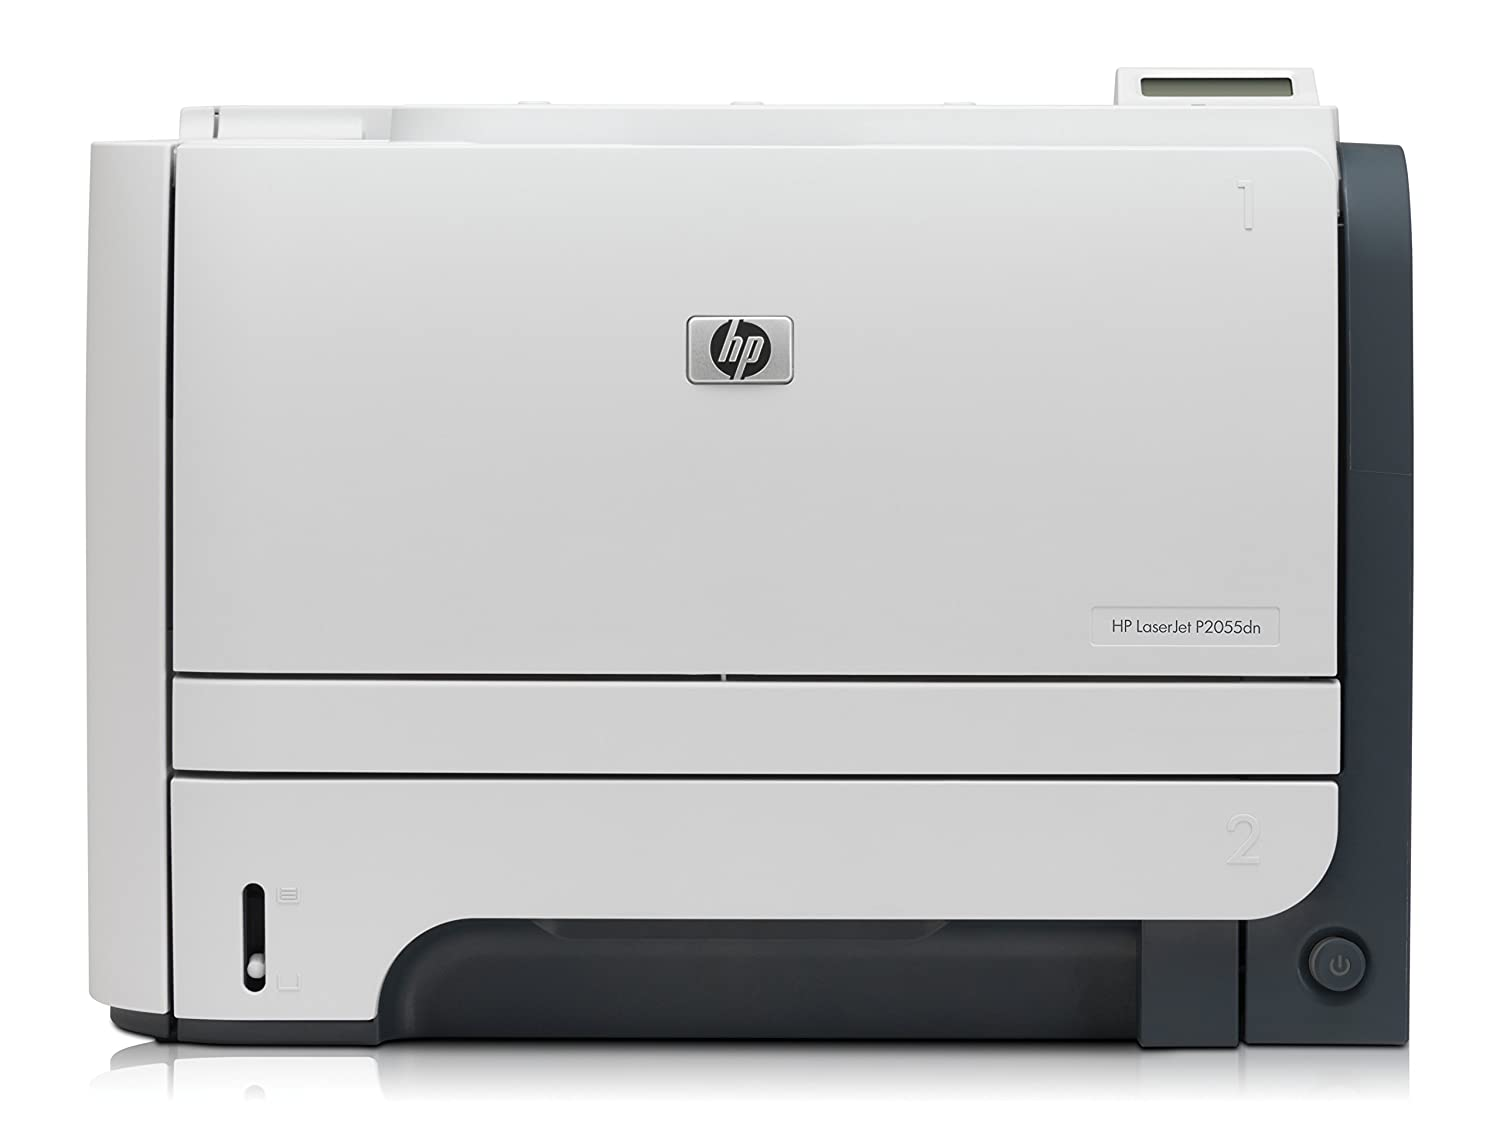 HP LaserJet P2055dn Workgroup Laser Printer Network - CE459A (Certified Refurbished)